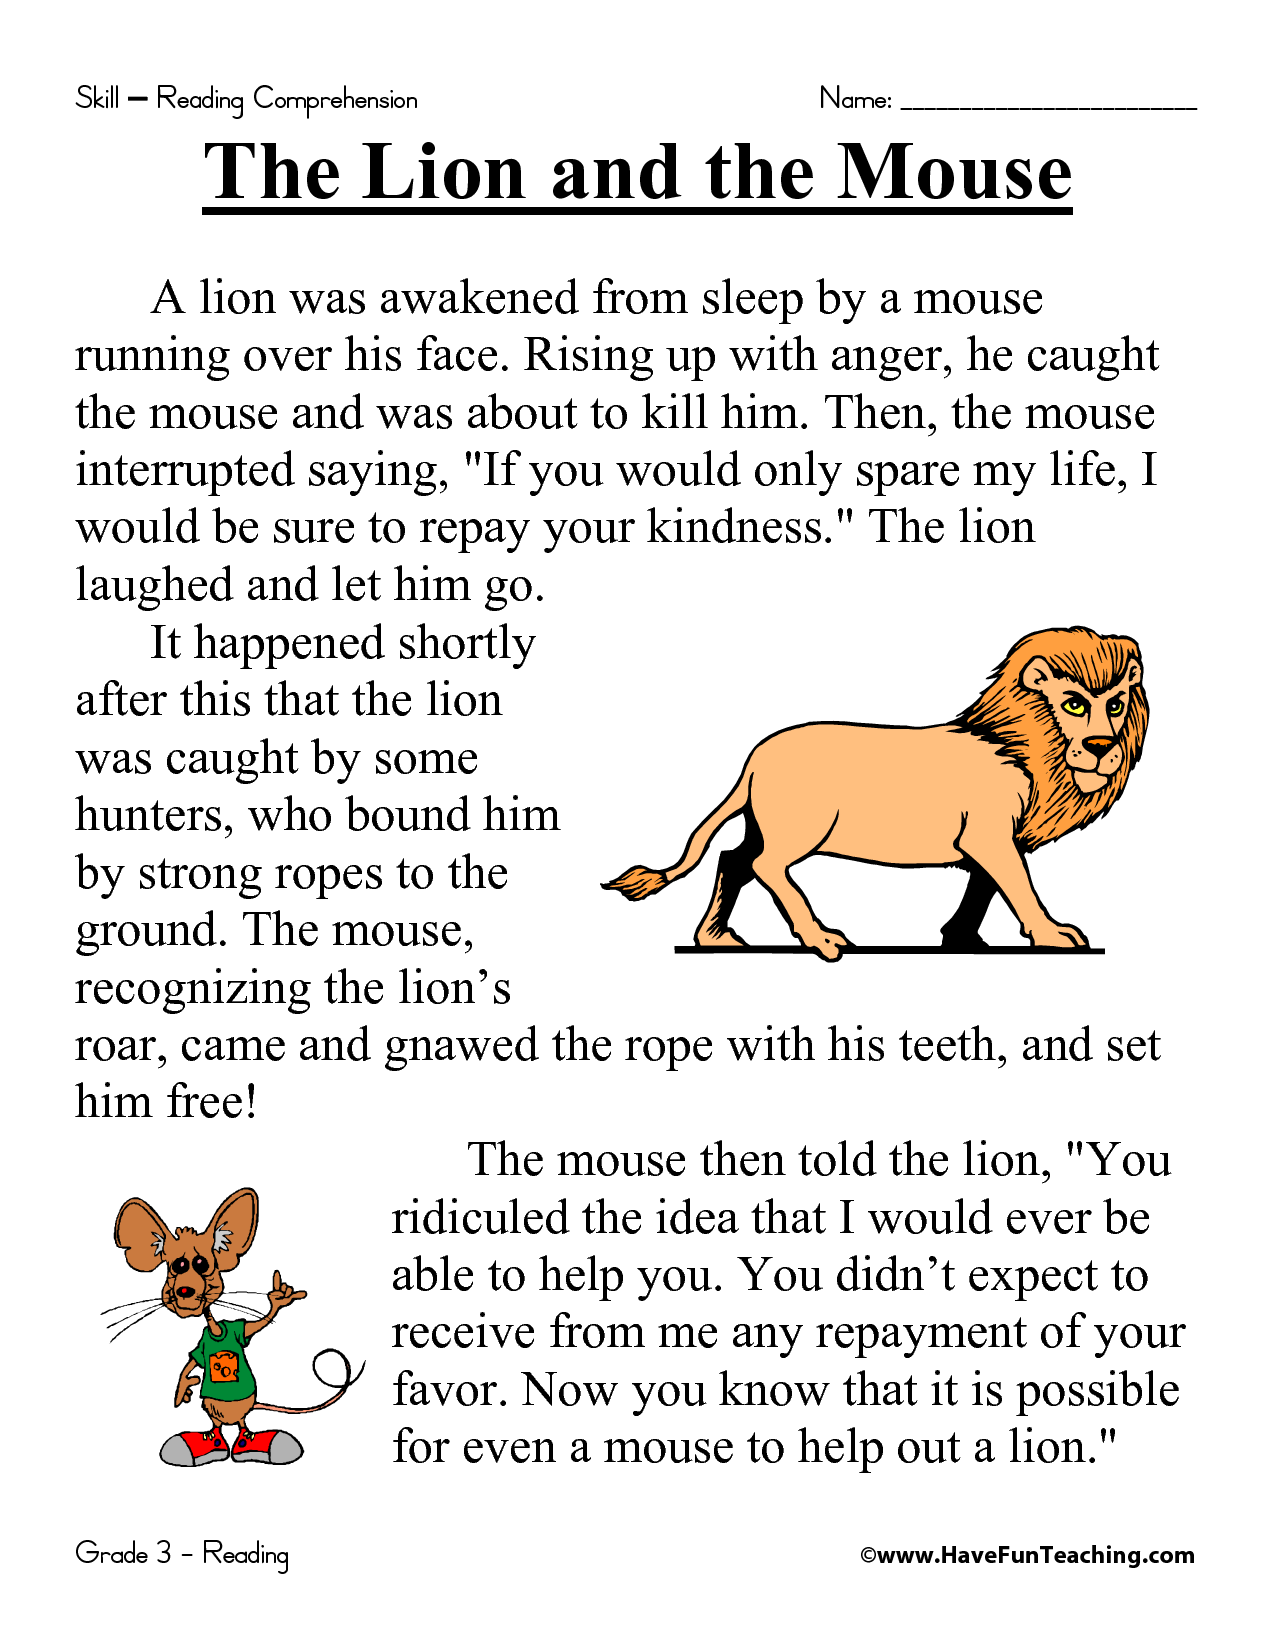 worksheet Free Comprehension Worksheets first grade reading comprehension worksheets the lion and mouse worksheet